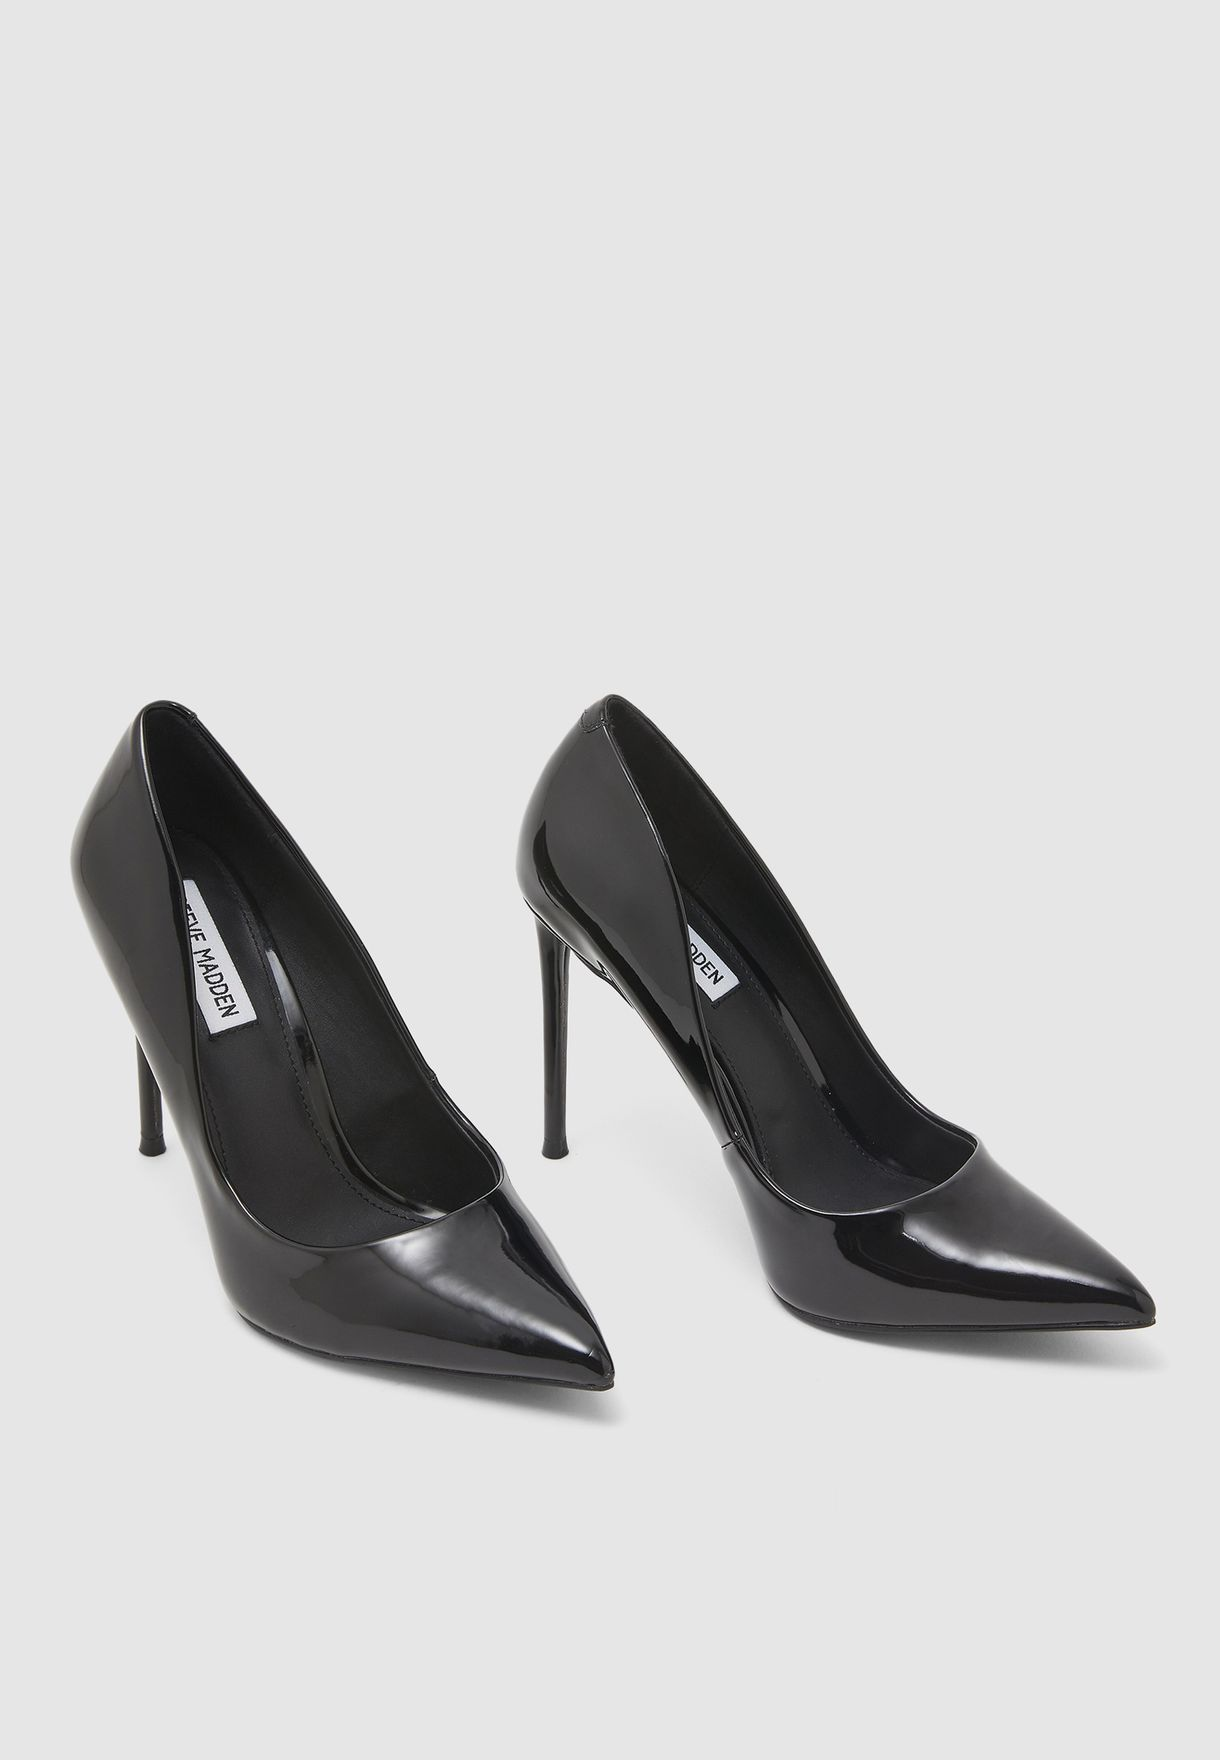 Vala High Heel Pump - Black